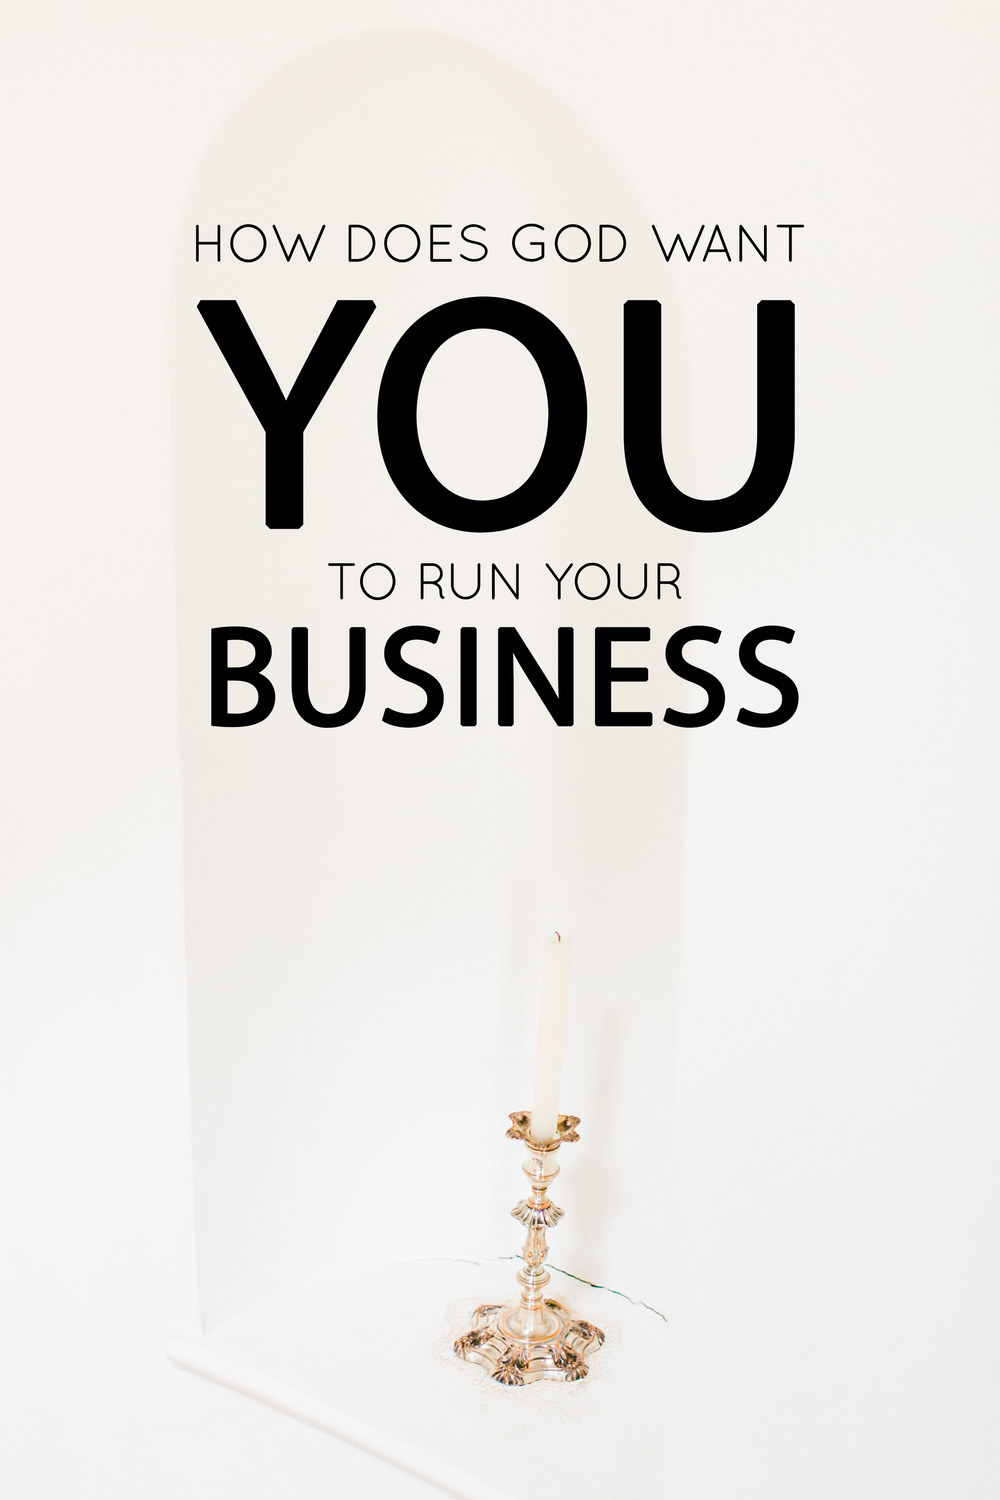 How does God want you to run your business? - the Jordan Brittley blog (www.jordanbrittleyblog.com)